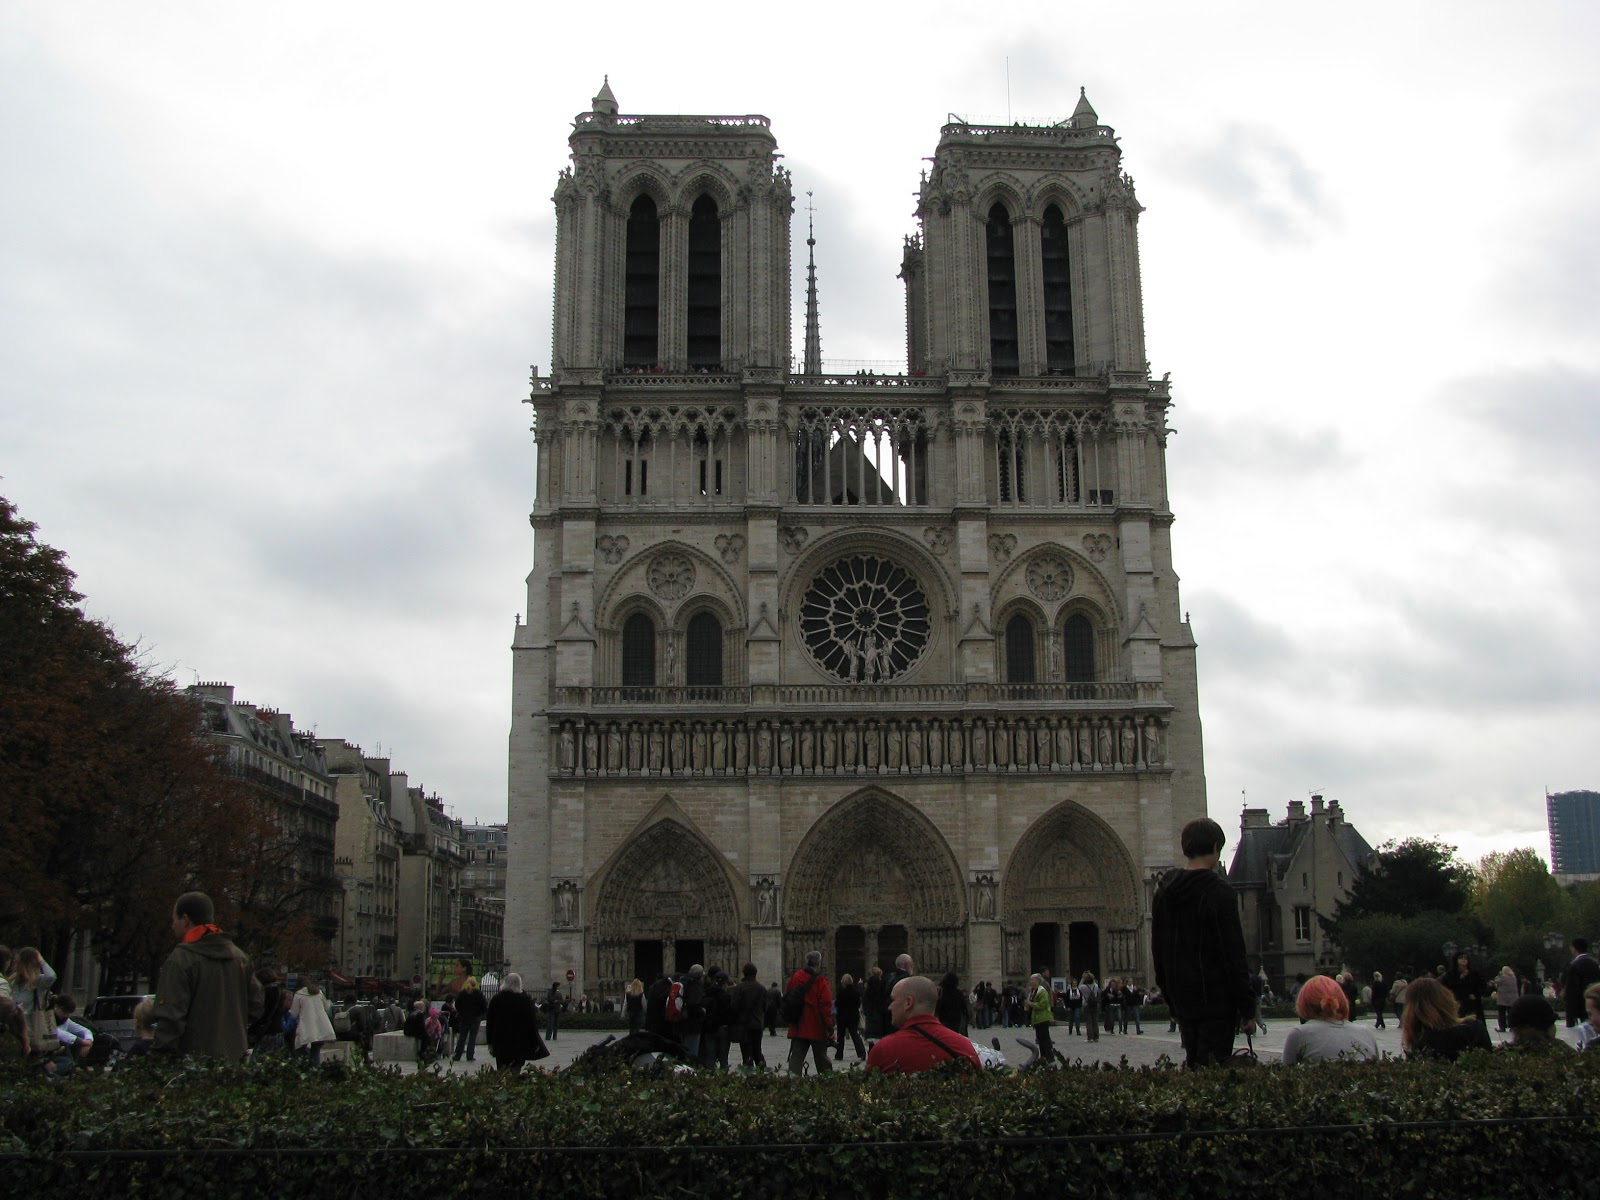 Notre dame is probably one of the most famous cathedrals in the world it took over 200 years to built and was one of the first gothic cathedrals to feature